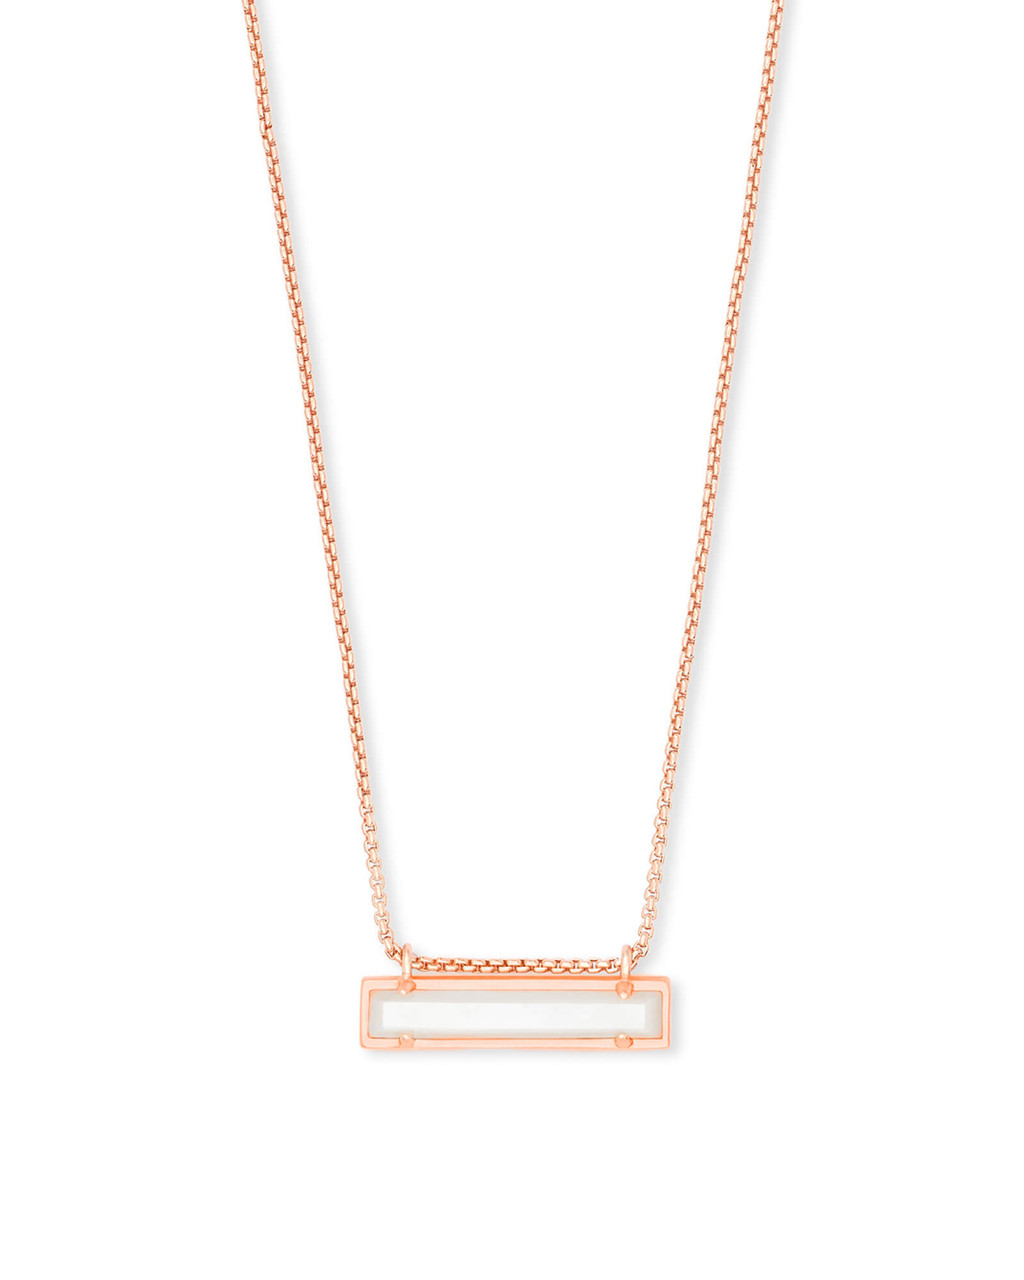 6fa672449bbc6 Leanor Rose Gold Pendant Necklace in Ivory Mother of Pearl